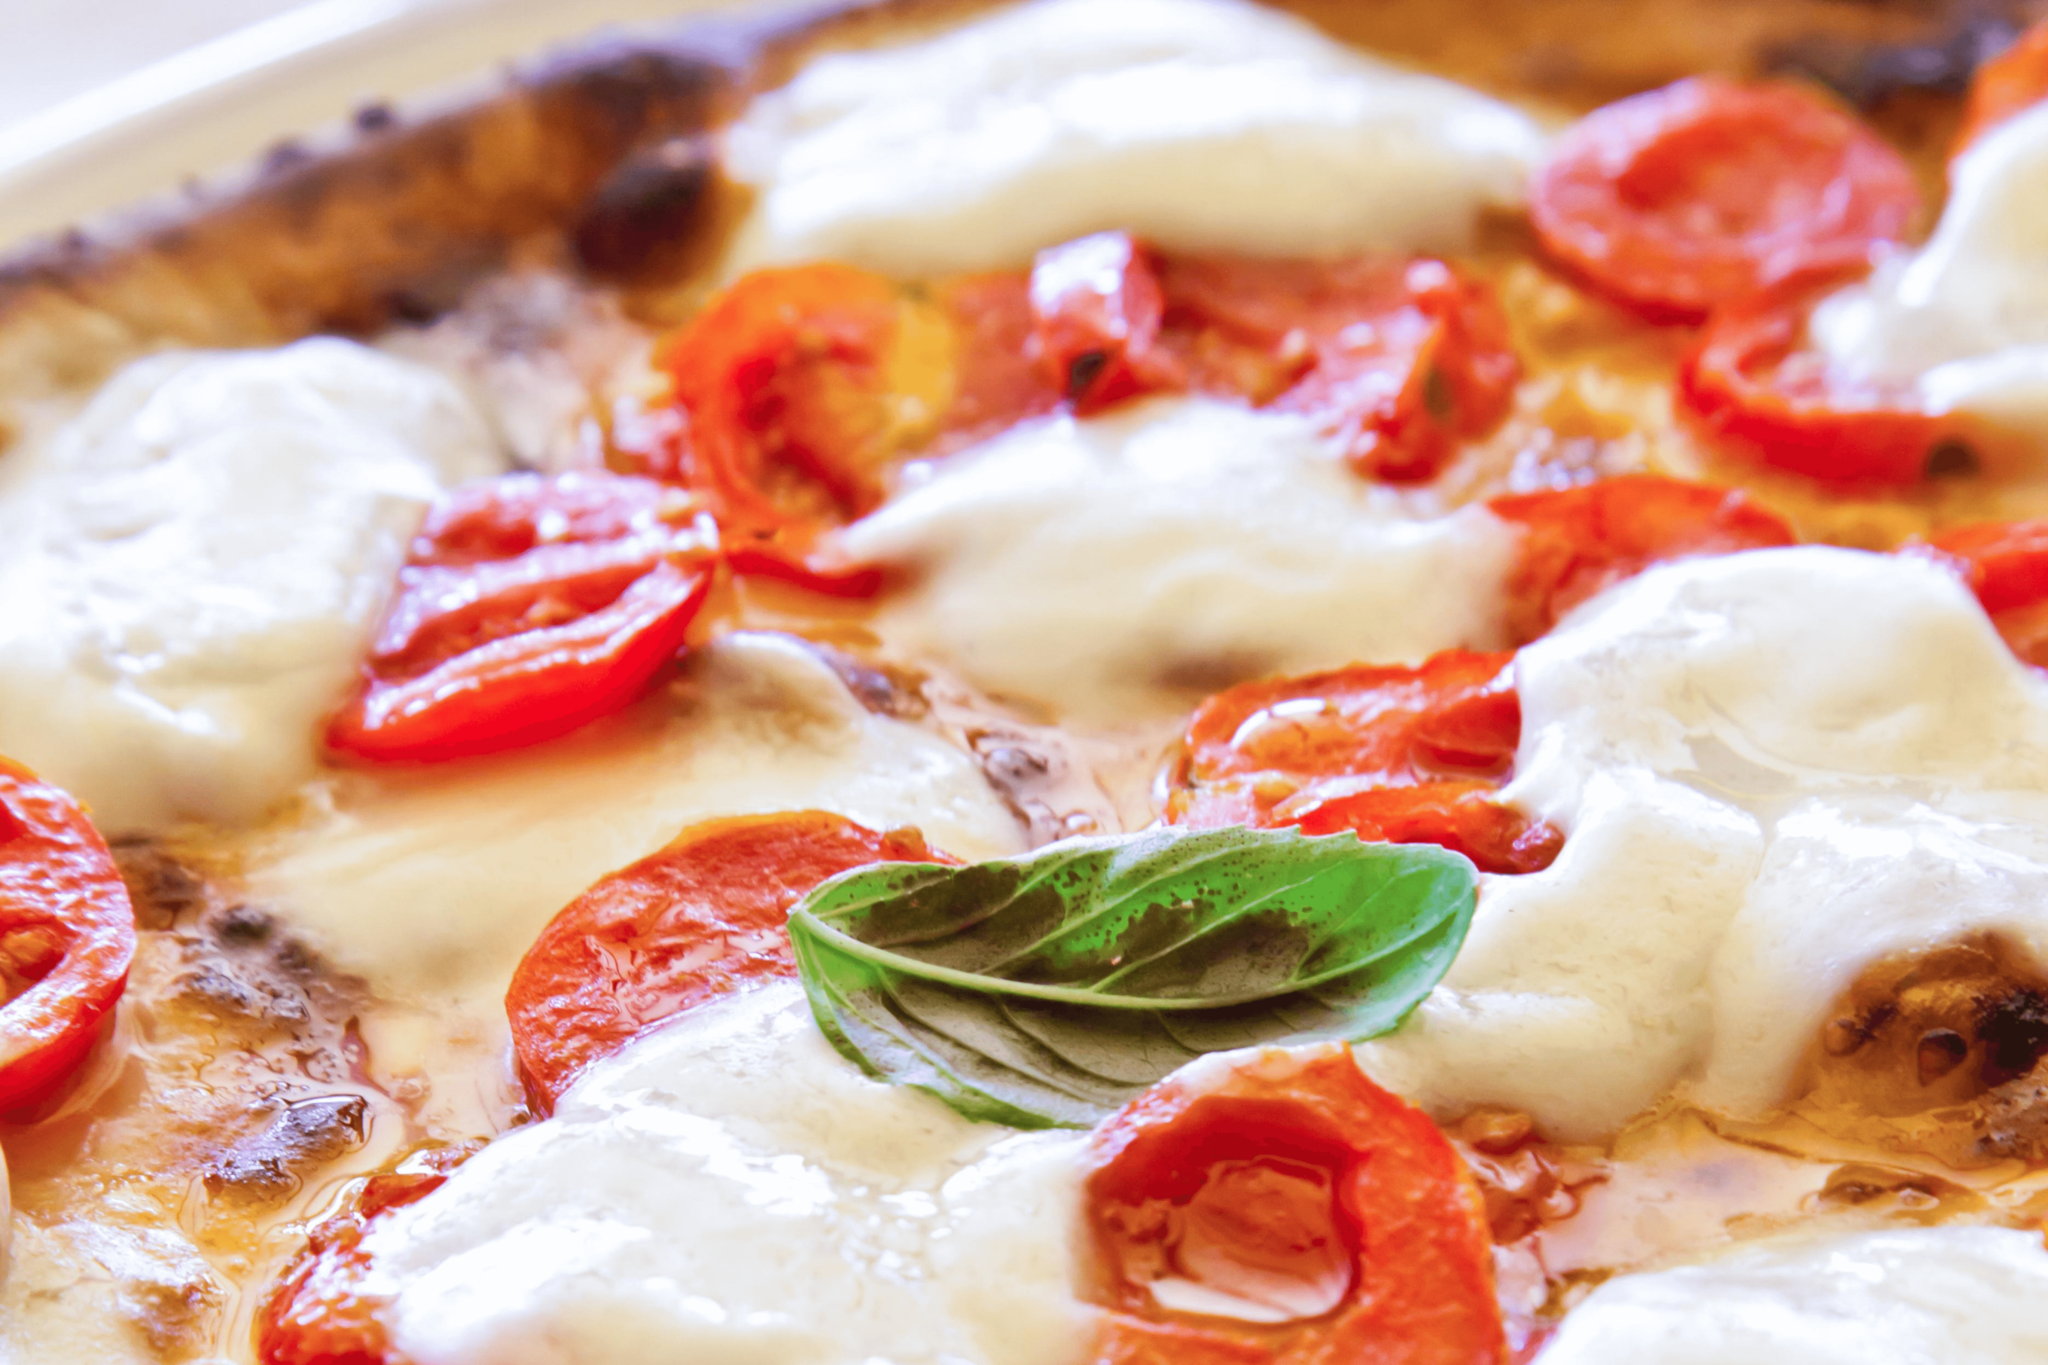 Tours from Home: Pizza Cooking Class with Italian Chefs, Denyse & Roberto